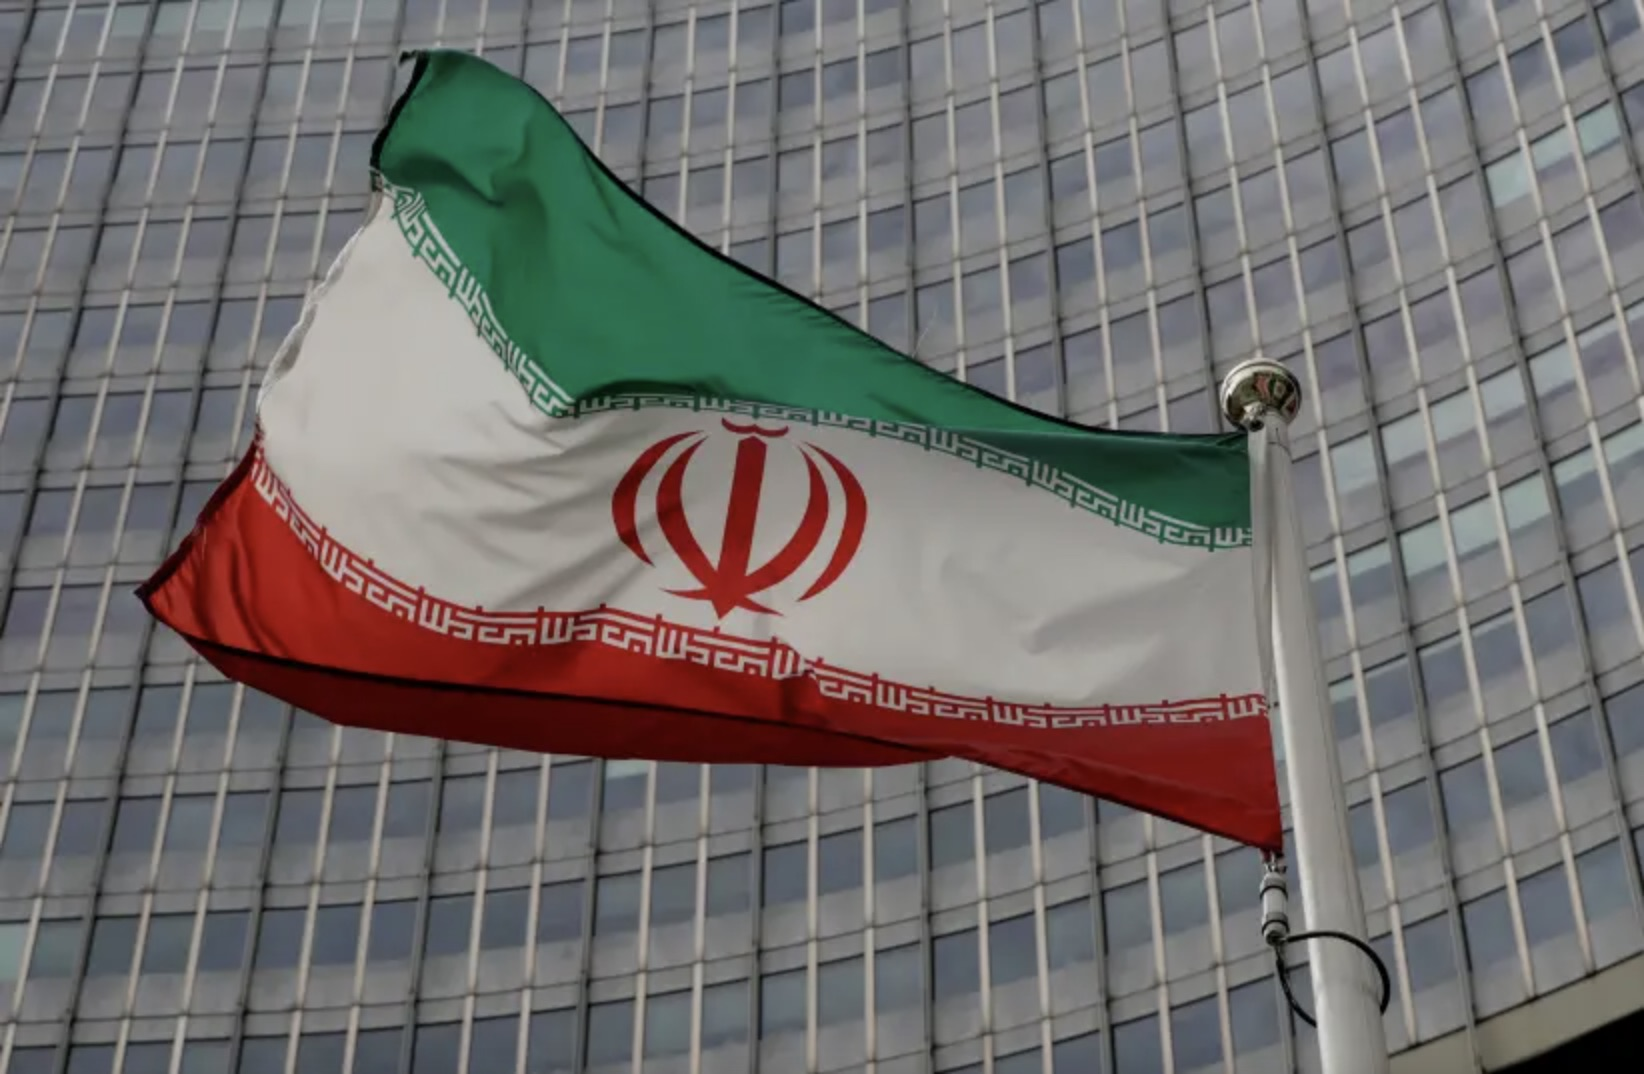 plane crash at the Boryspil… REUTERS 19/01/2020 12:16 IRAN-NUCLEAR/IAEA FILE PHOTO: An Iranian flag flutters in front of the IAEA headquarters in Vienna REUTERS Link copied to clipboard. (internationalbox) FILE PHOTO: An Iranian flag flutters in front of the IAEA headquarters in Vienna 19/01/2020 12